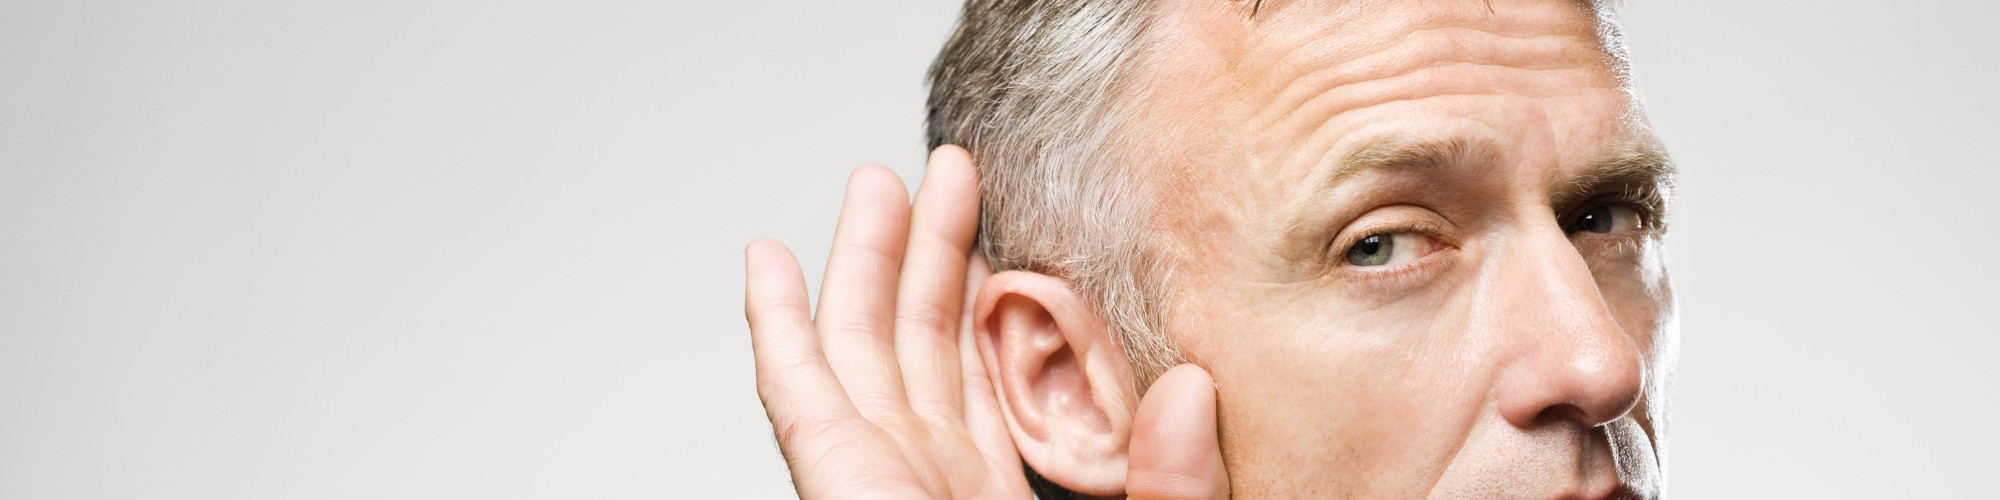 Get your hearing checked today